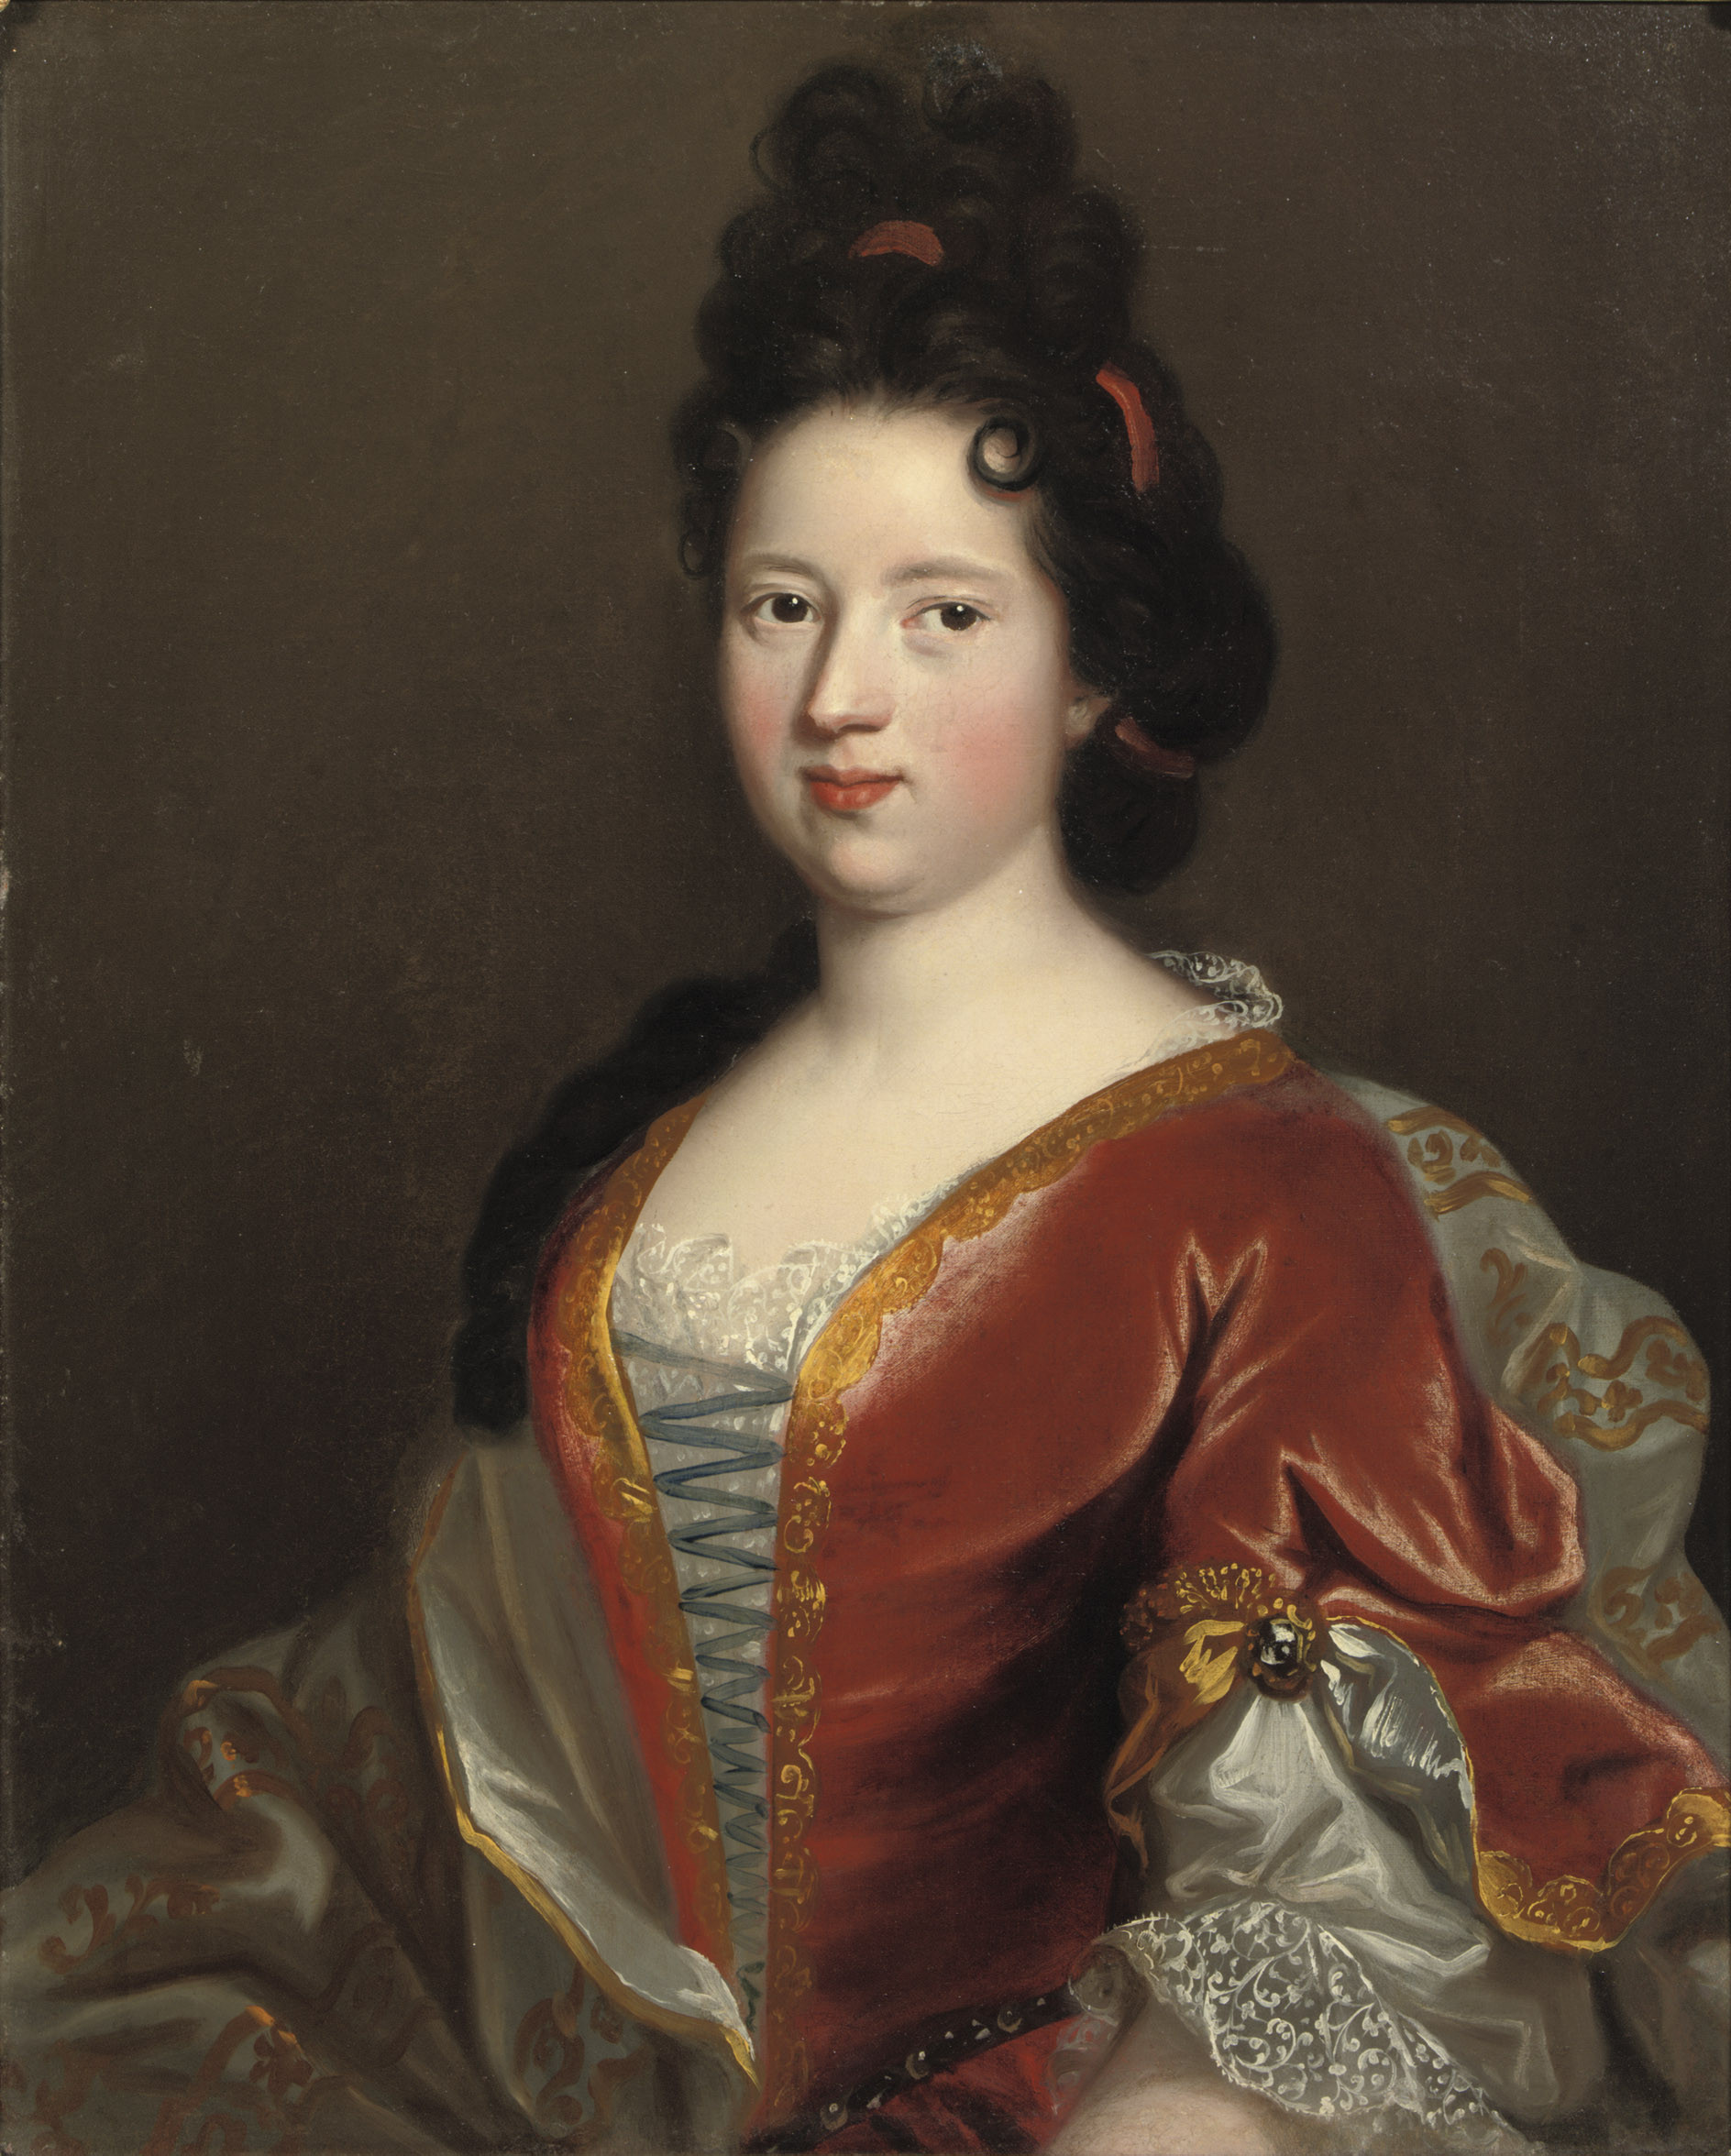 Portrait of a young lady, half-length, in a gold embroidered red velvet dress and white chemise